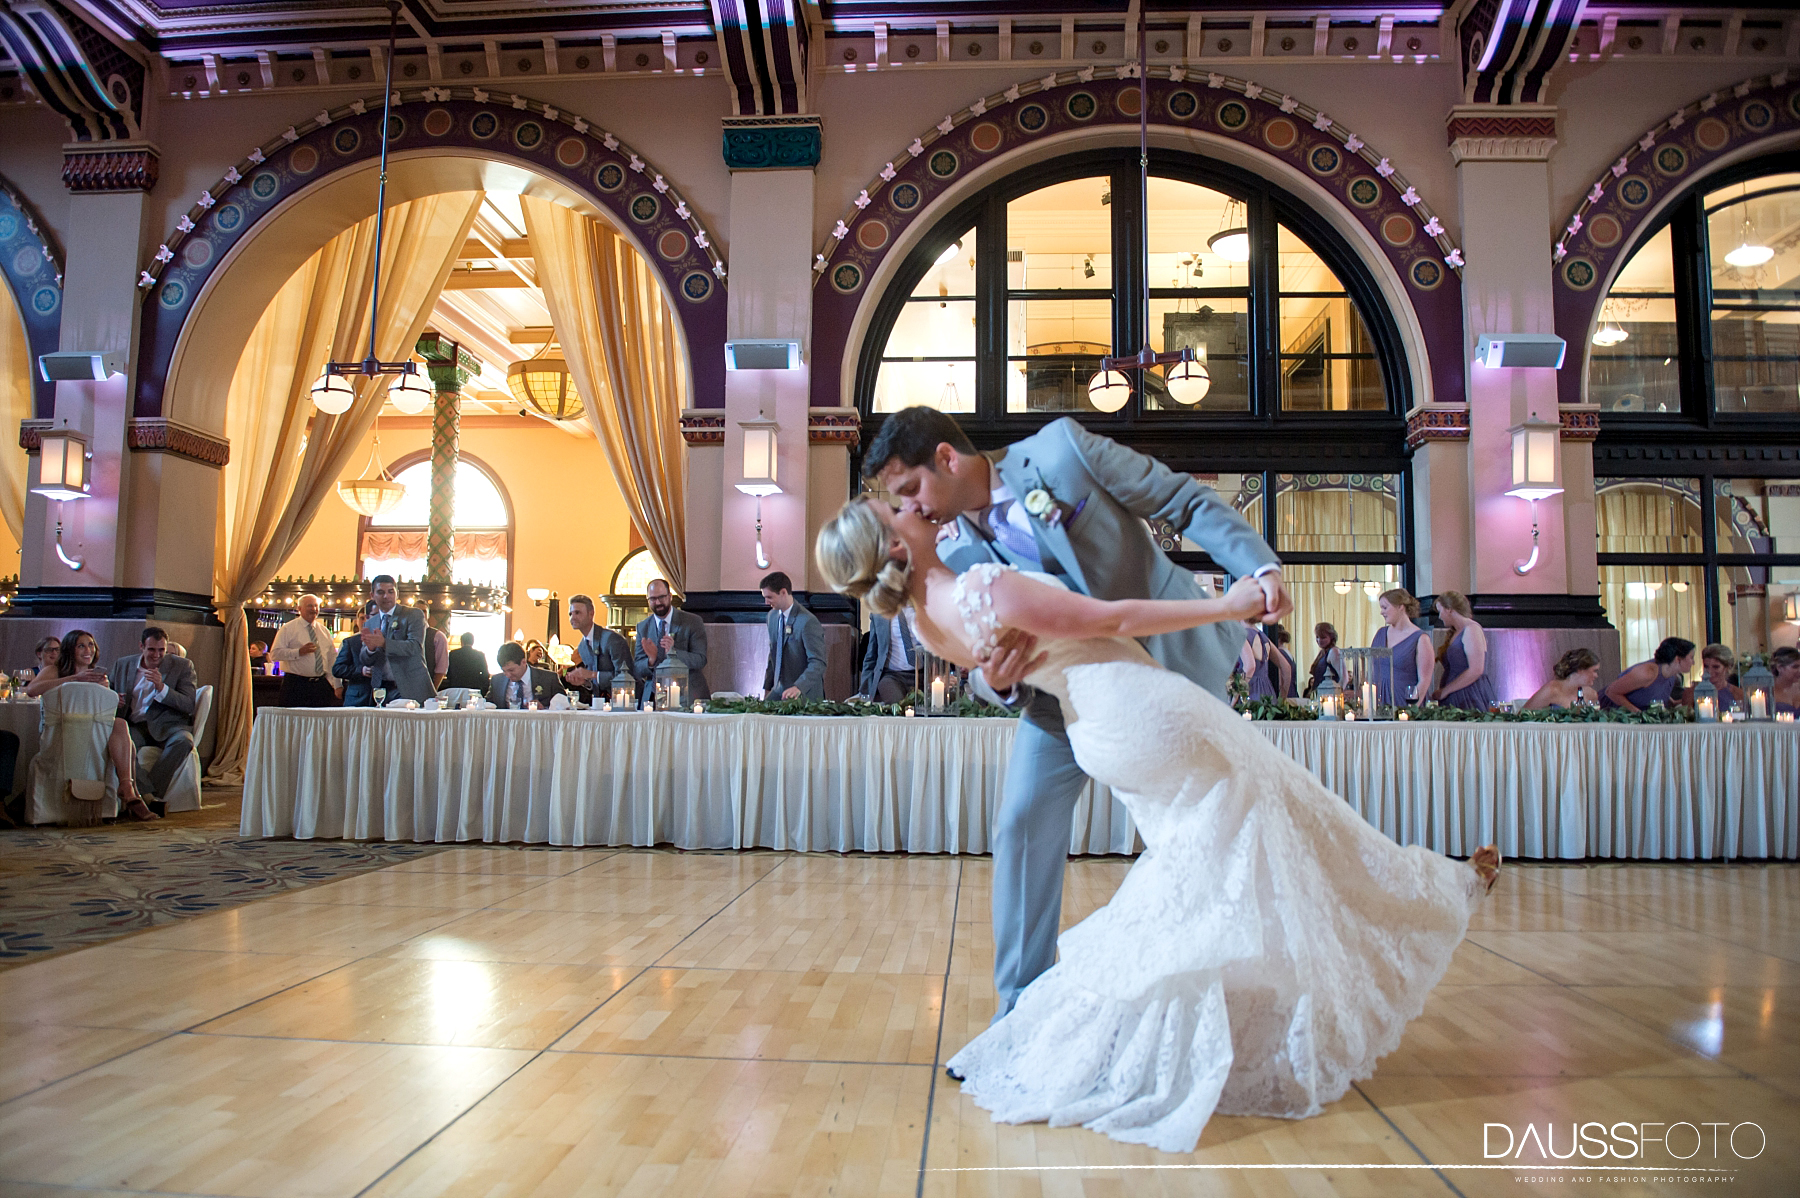 DaussFOTO_20160625_0520_Indiana Wedding Photographer_Crowne Plaza at Historic Union Station.jpg